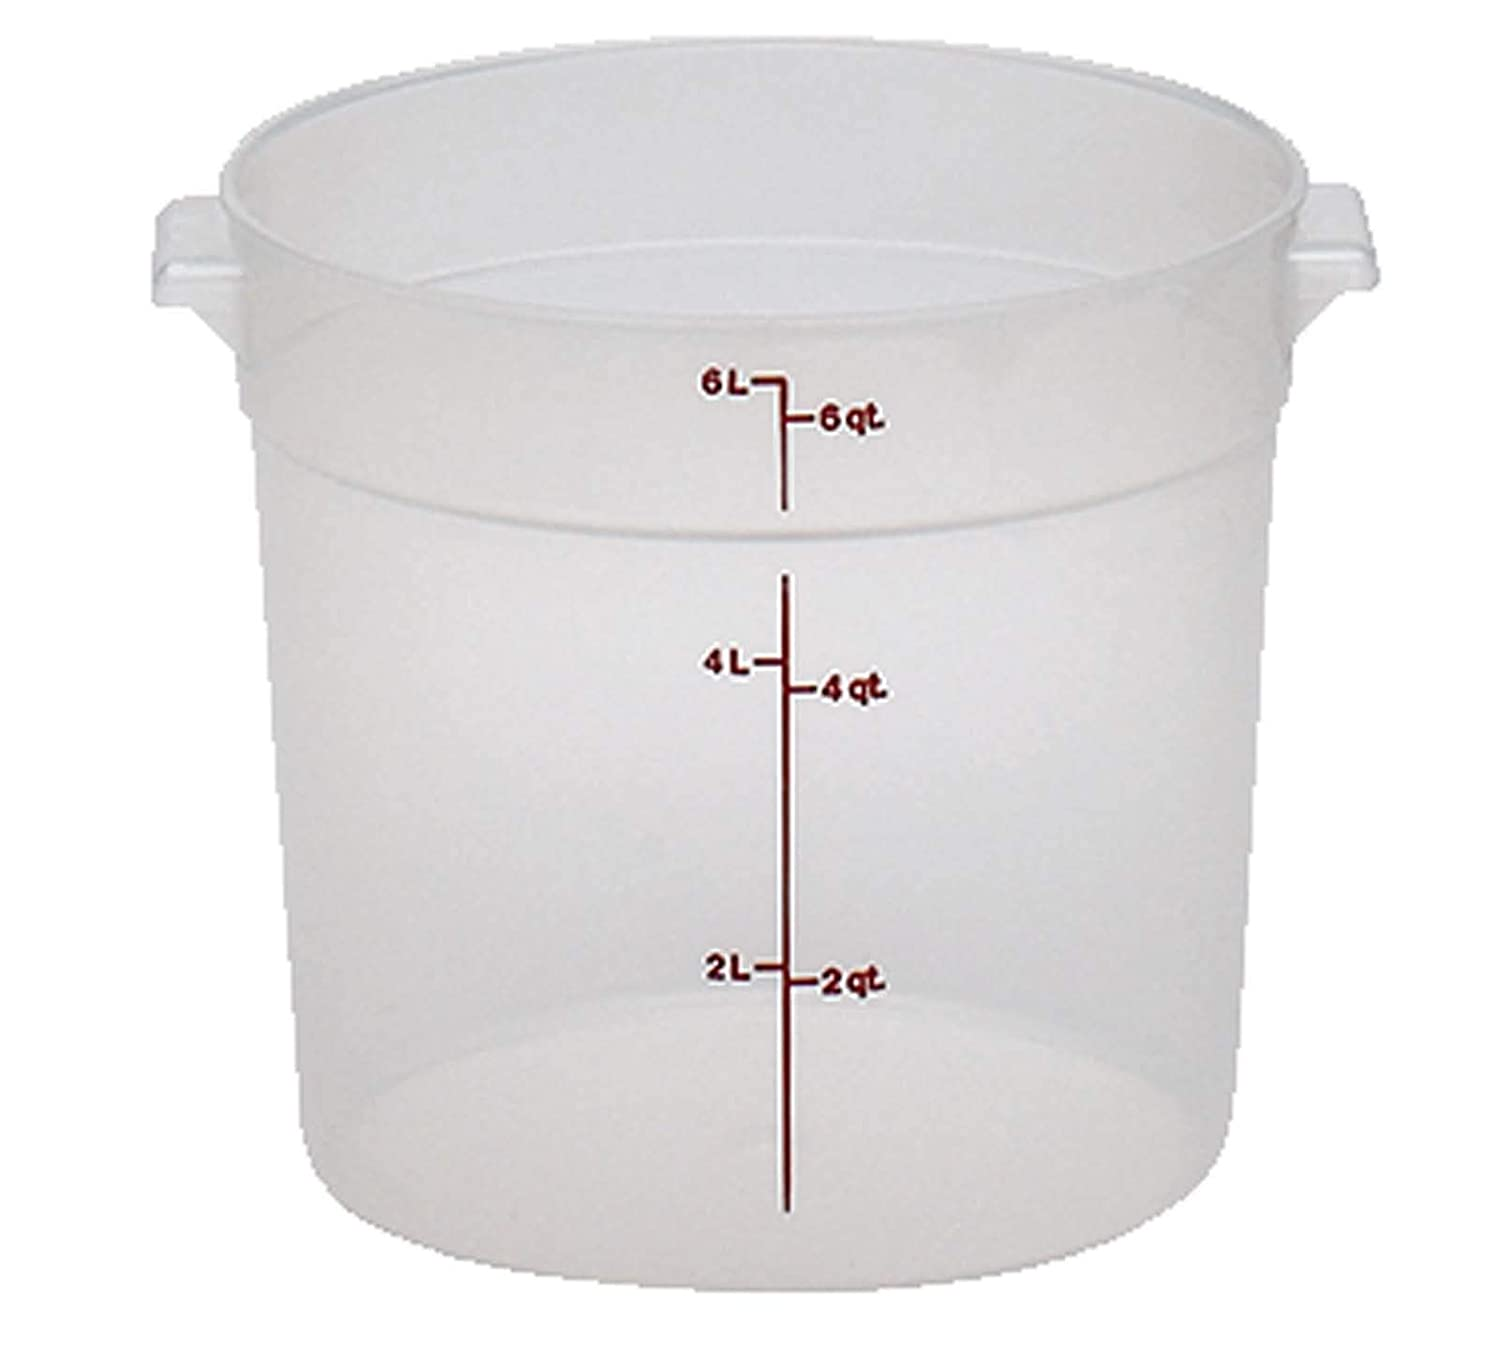 6-Quart Cambro Polypropylene Storage Container